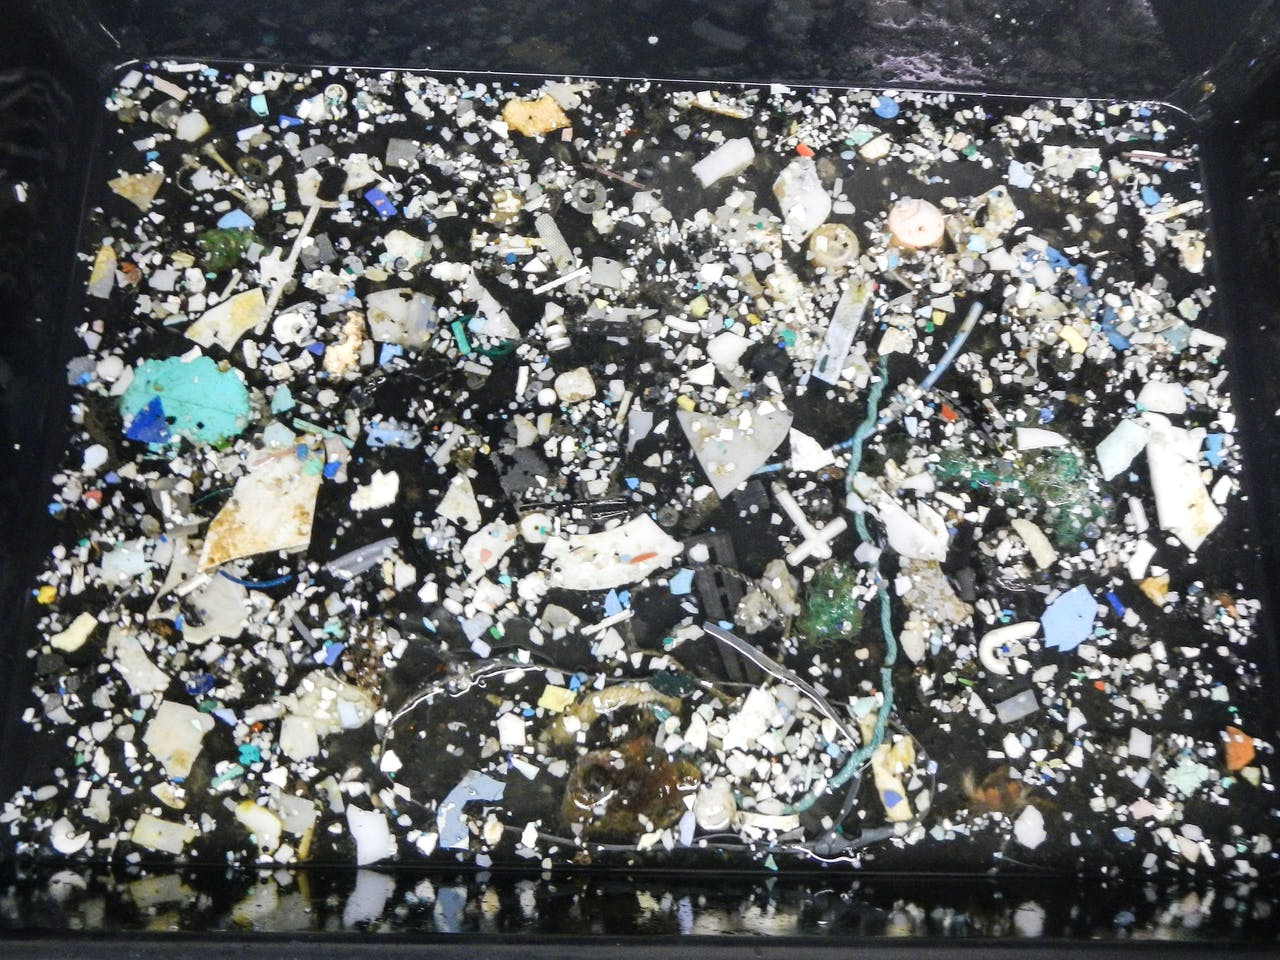 EPA/THE OCEAN CLEANUP HANDOUT HANDOUT EDITORIAL USE ONLY/NO SALES